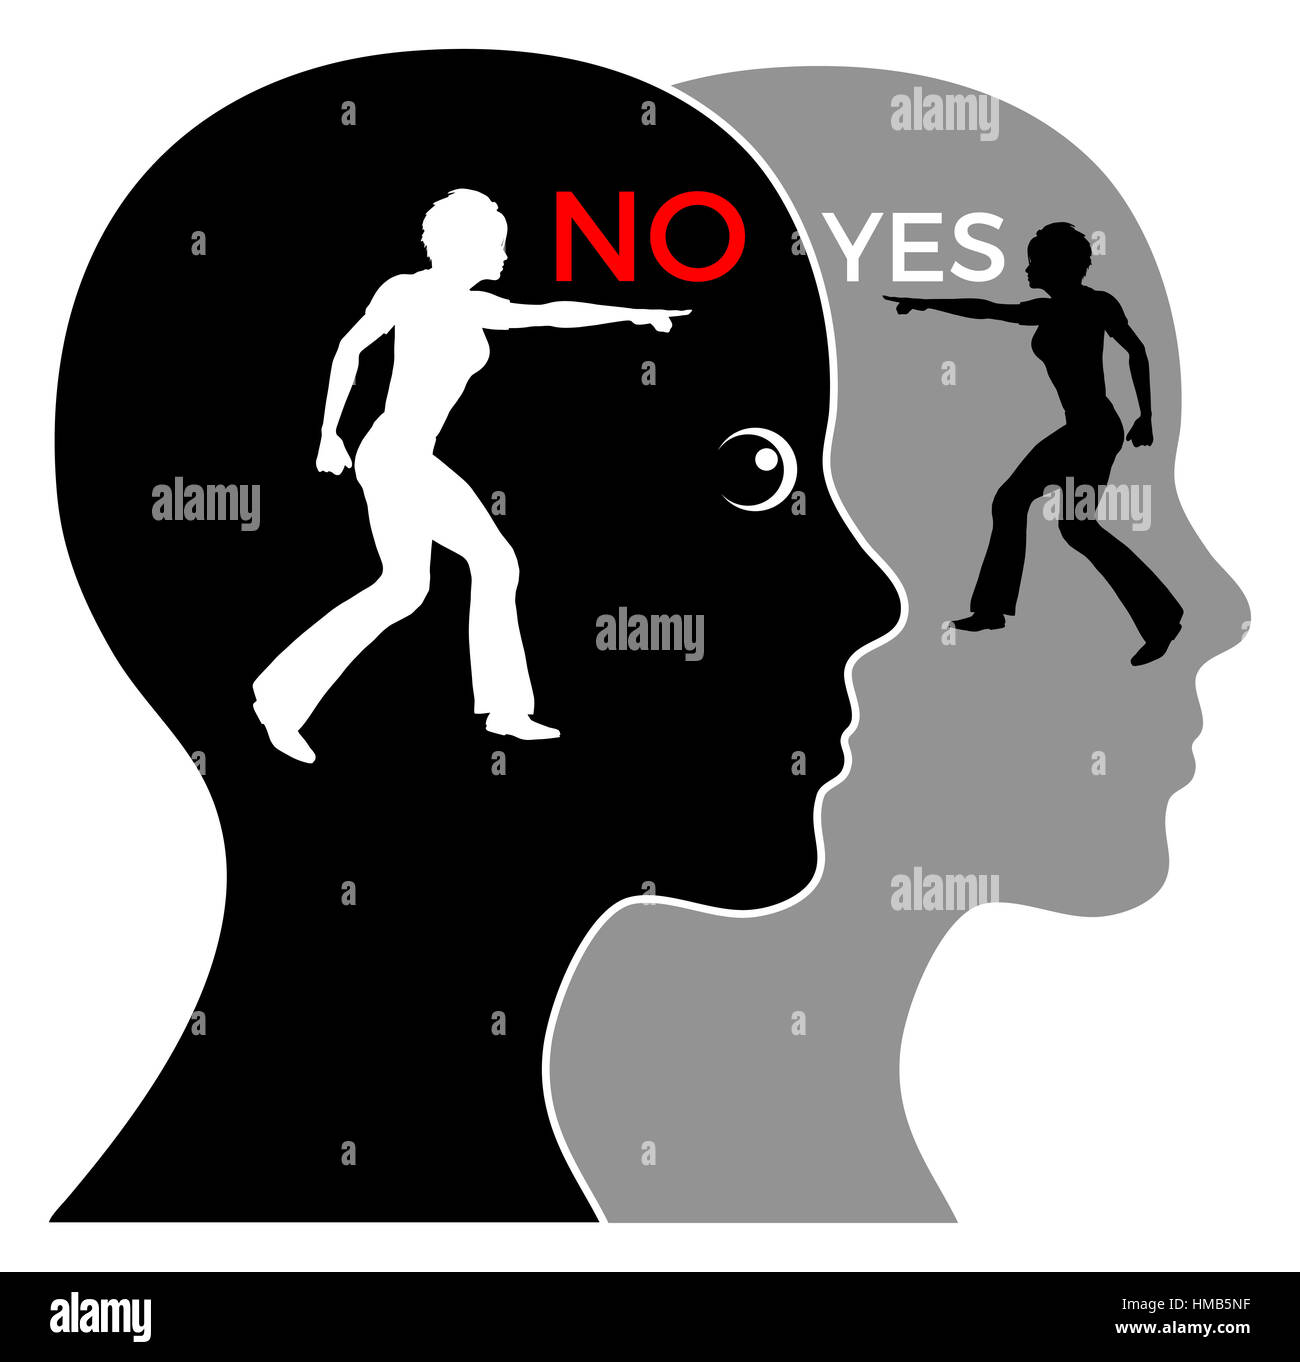 Consciousness versus unconsciousness, making complicated decisions, yes or no - Stock Image